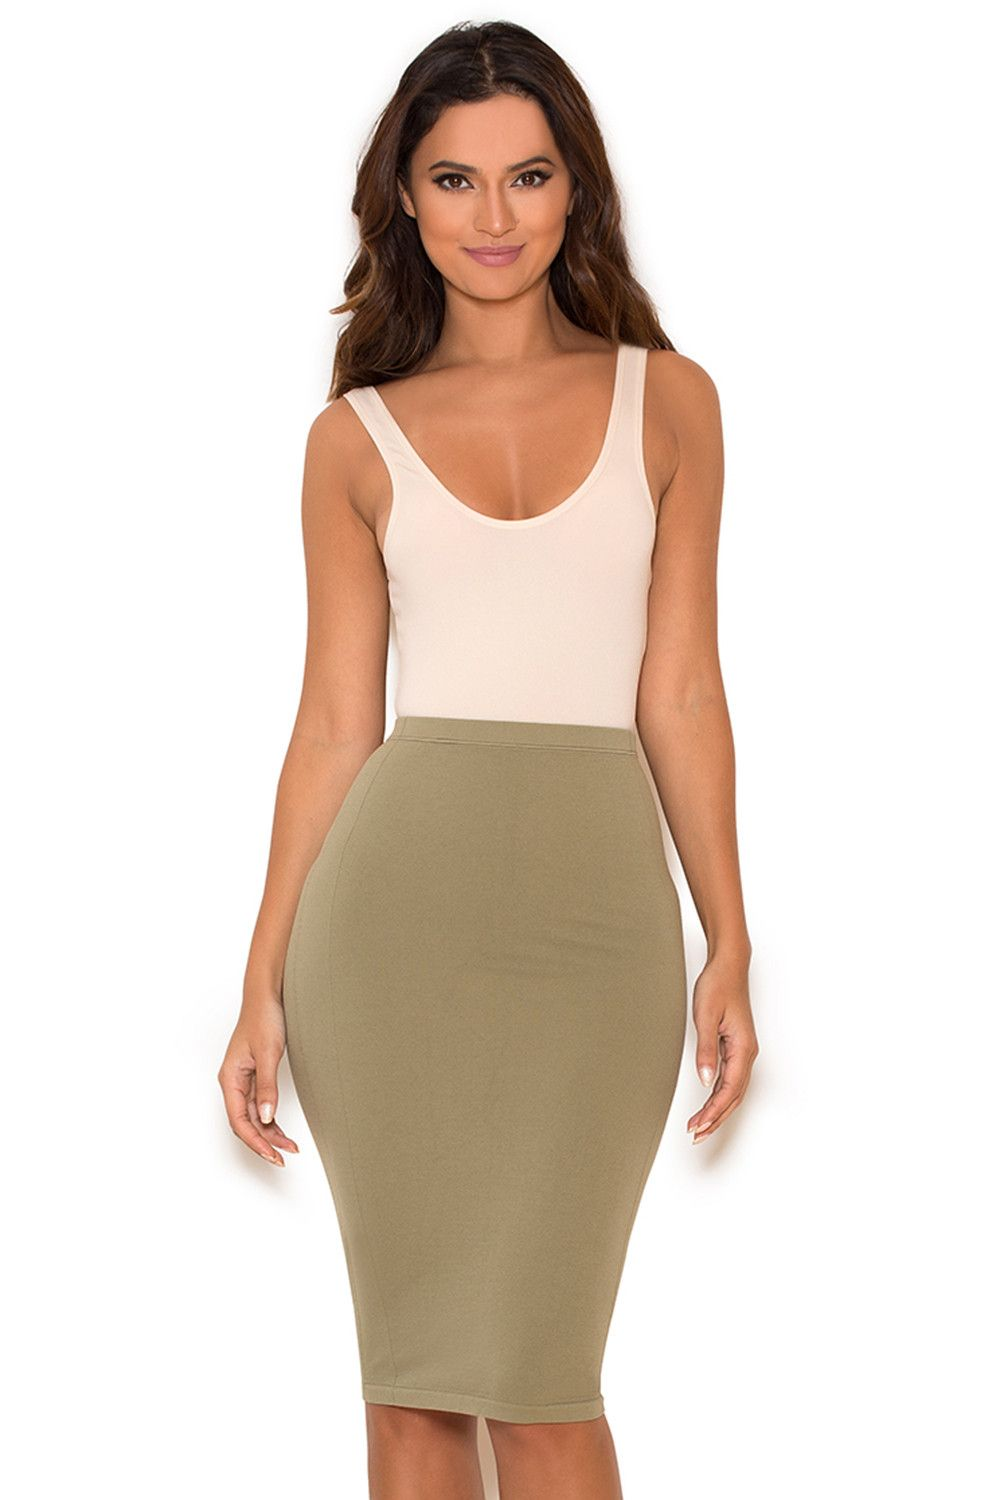 Clothing : Bodysuits : 'Luca' Nude Seamless Knit Stretch Bodysuit